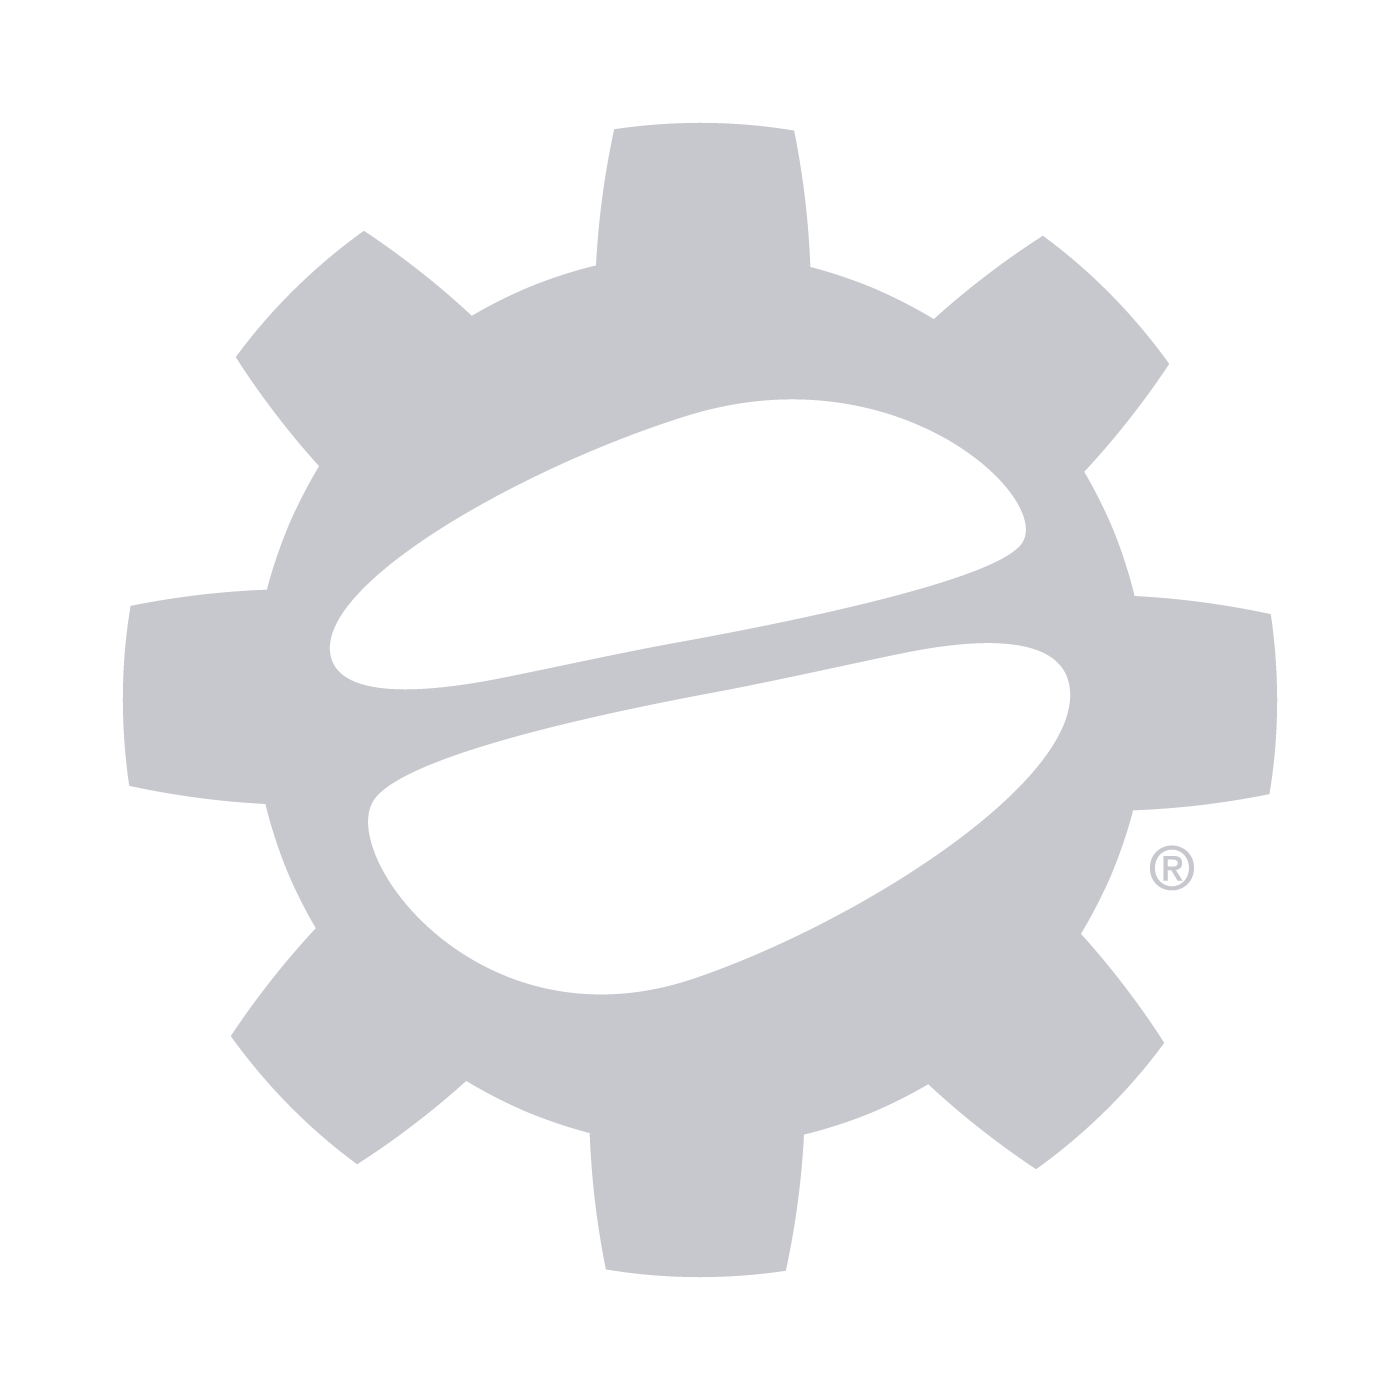 Gold Tone Filter - Coffee Makers #4 Cone